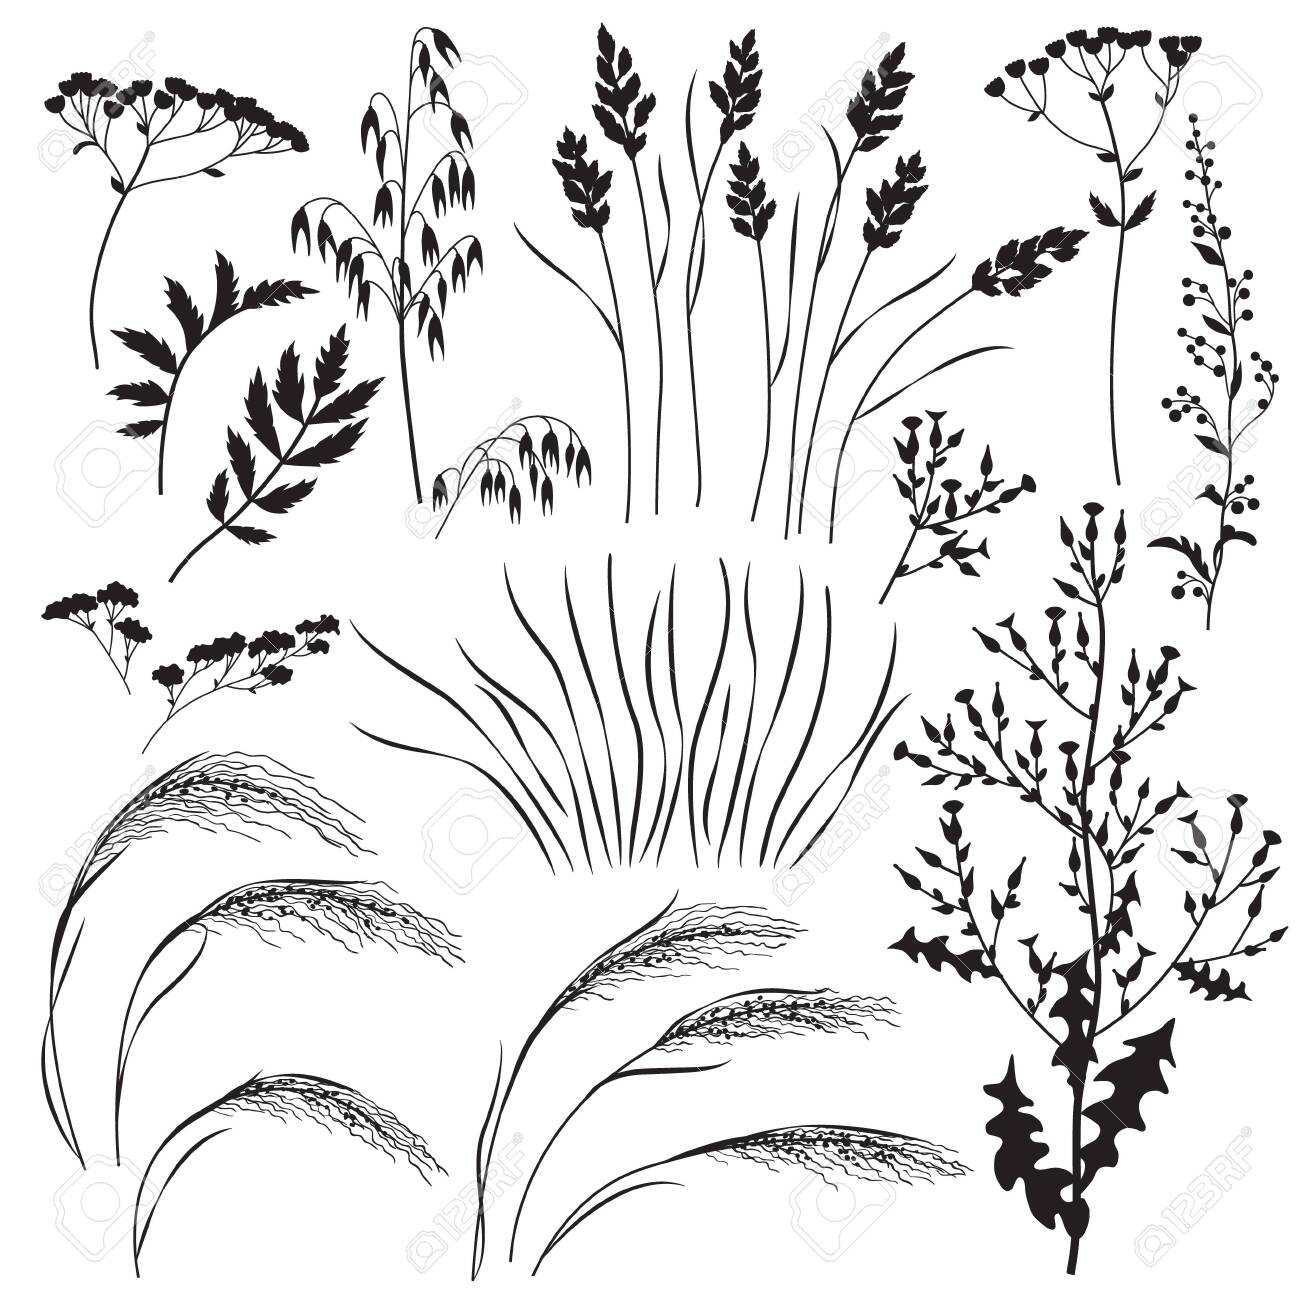 Silhouette set of wild grasses, herbs and cereals isolated on..